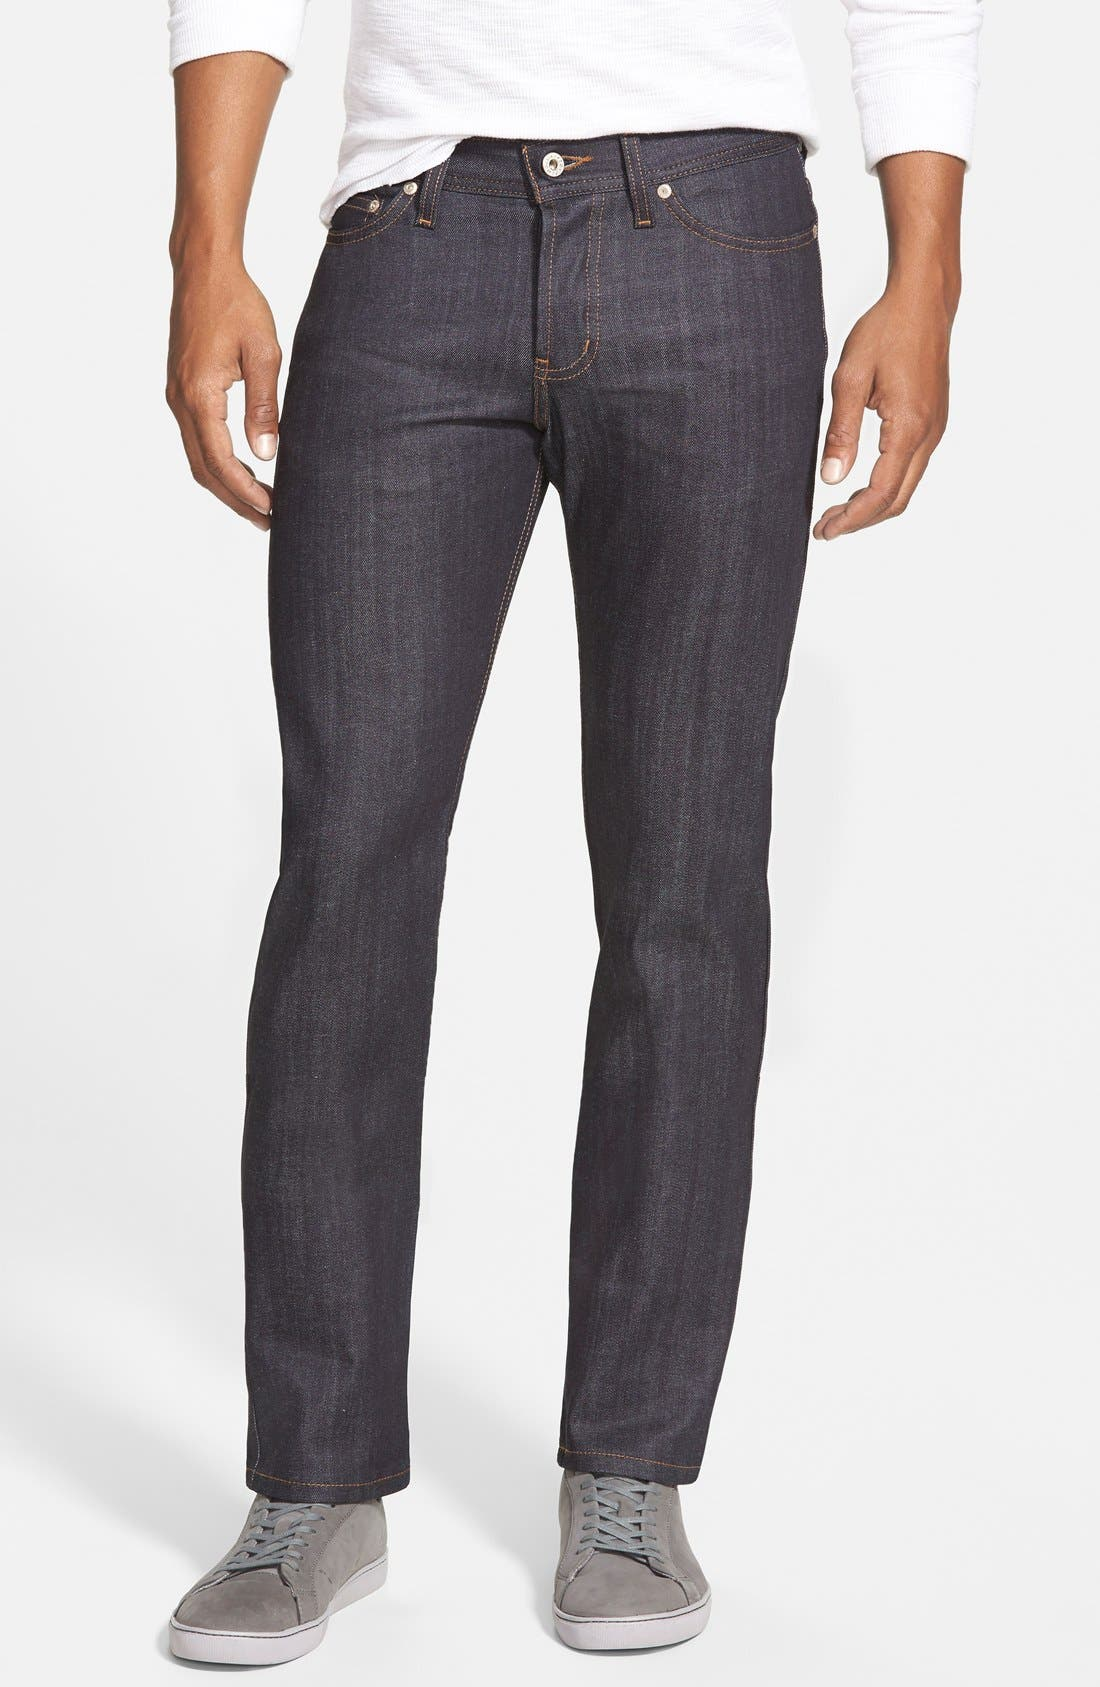 'Weird Guy' Slim Fit Jeans,                             Main thumbnail 1, color,                             Indigo